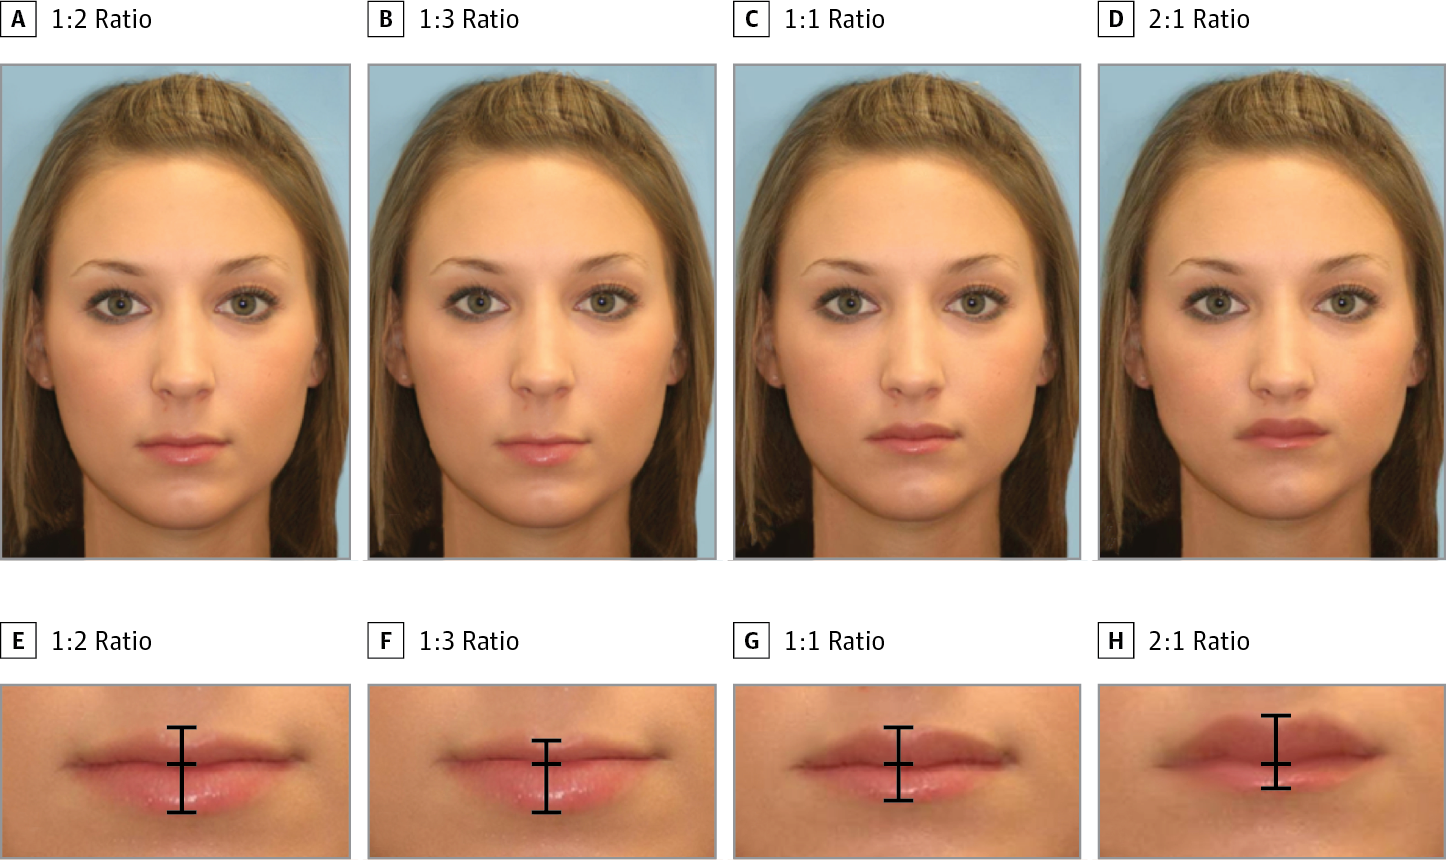 French F. reccomend Facial esthetic proportions